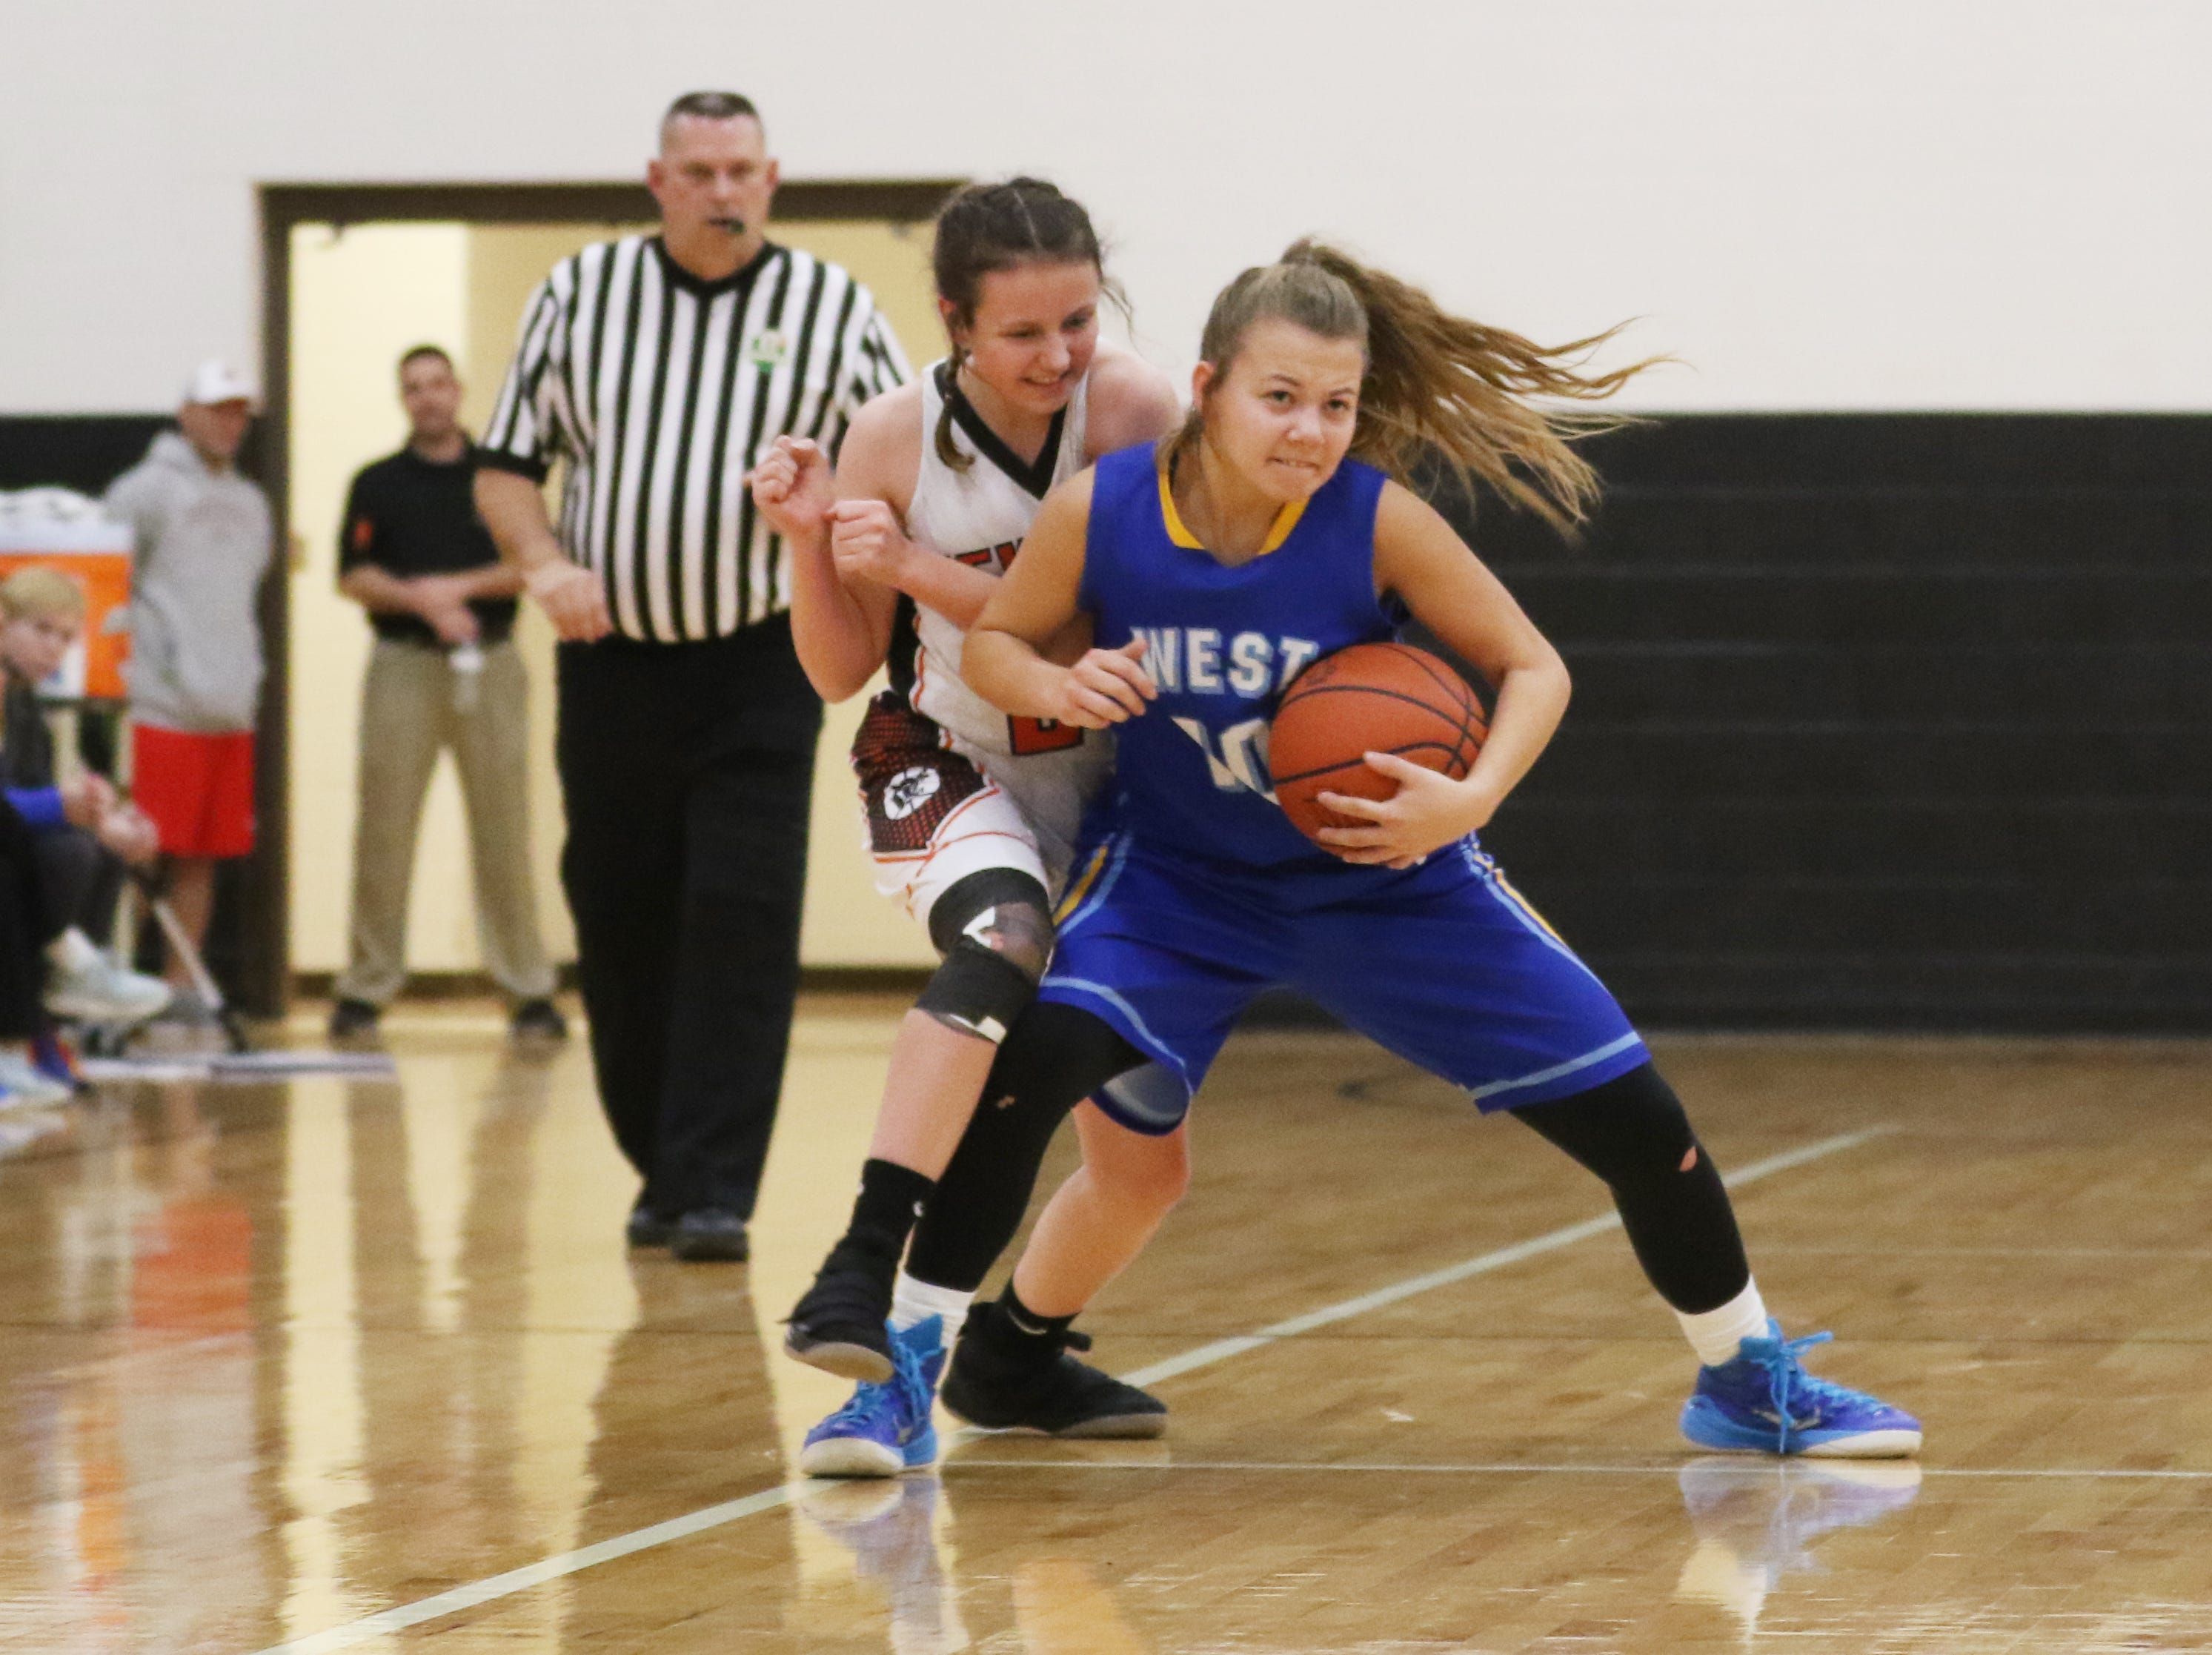 West Muskingum's Maddi Curtis tries to shed pressure from New Lexington's Lydia Stephens.